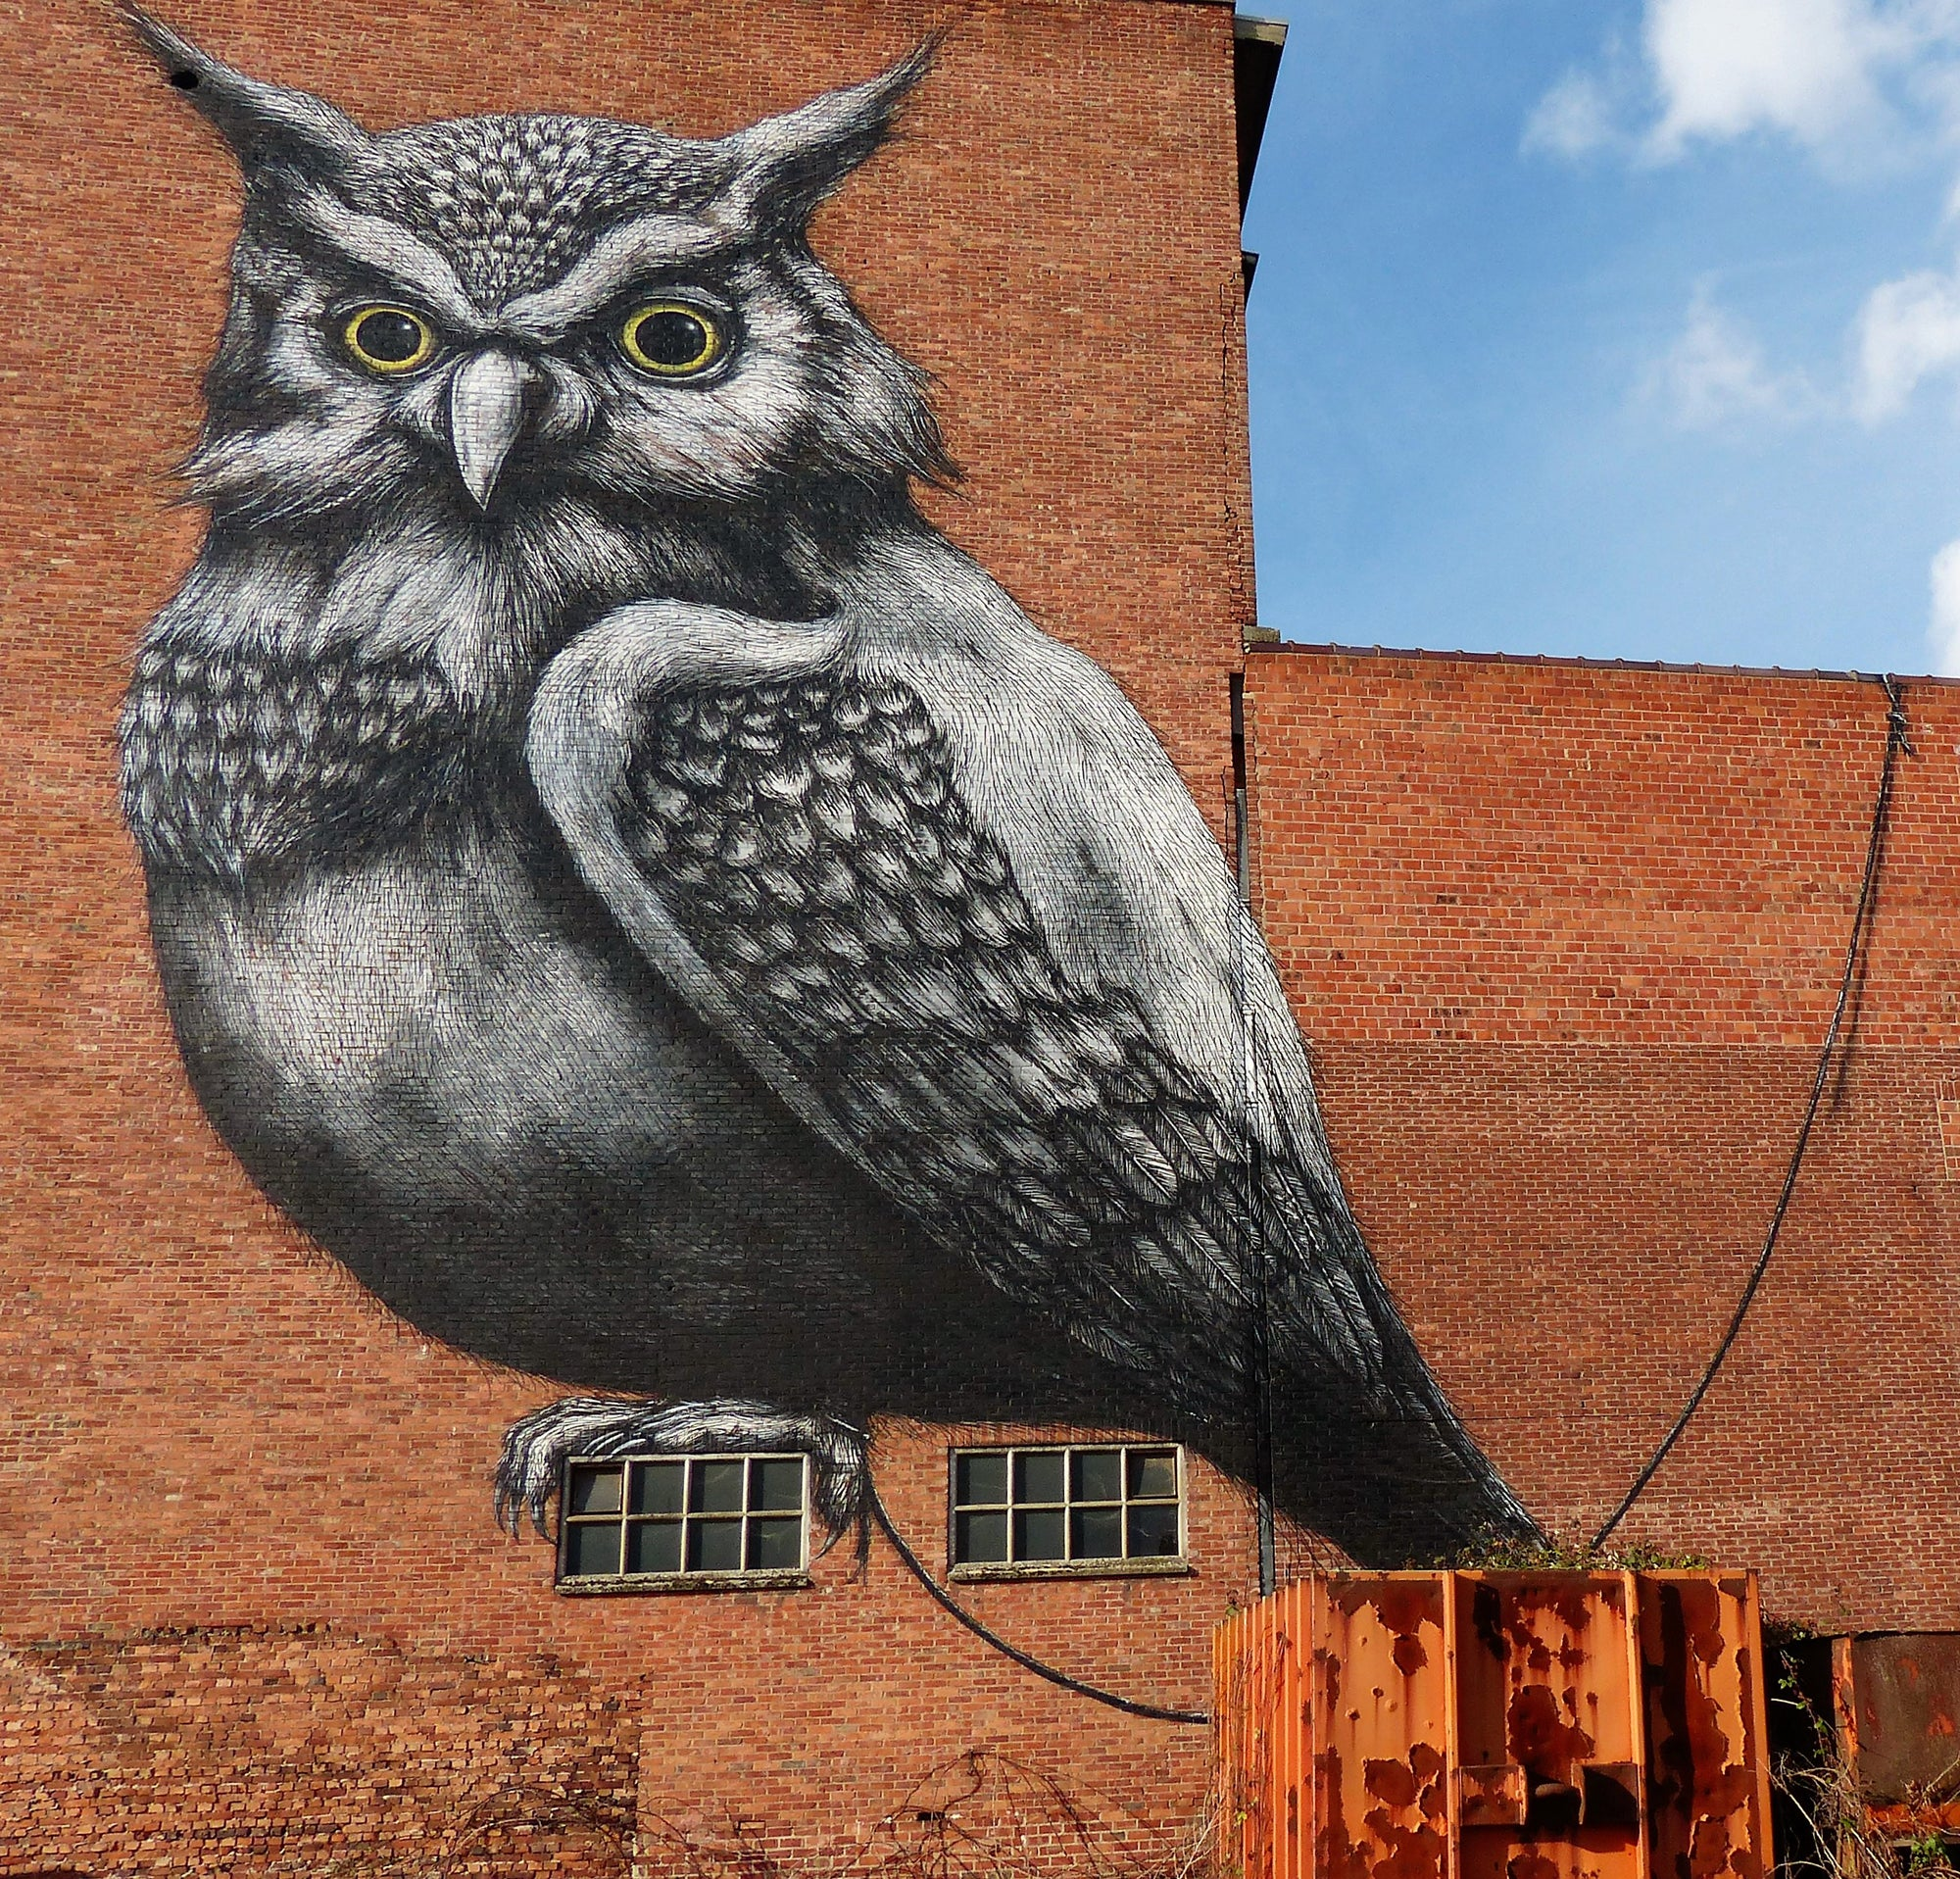 Artist Series: The Artwork of ROA, From Streets to Gallery